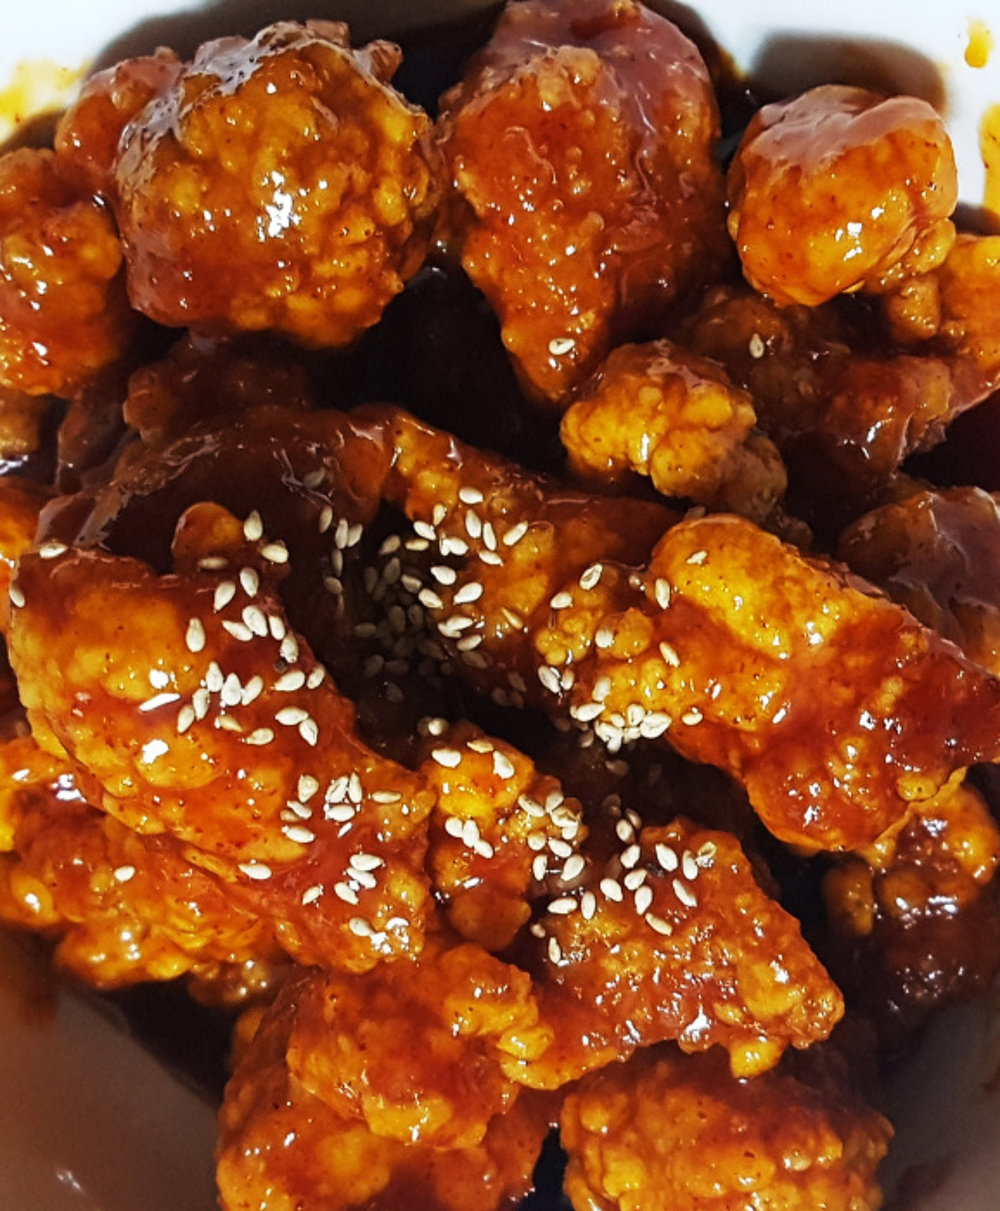 Korean_Fried Chicken with Sweet and Sour Sauce.jpg